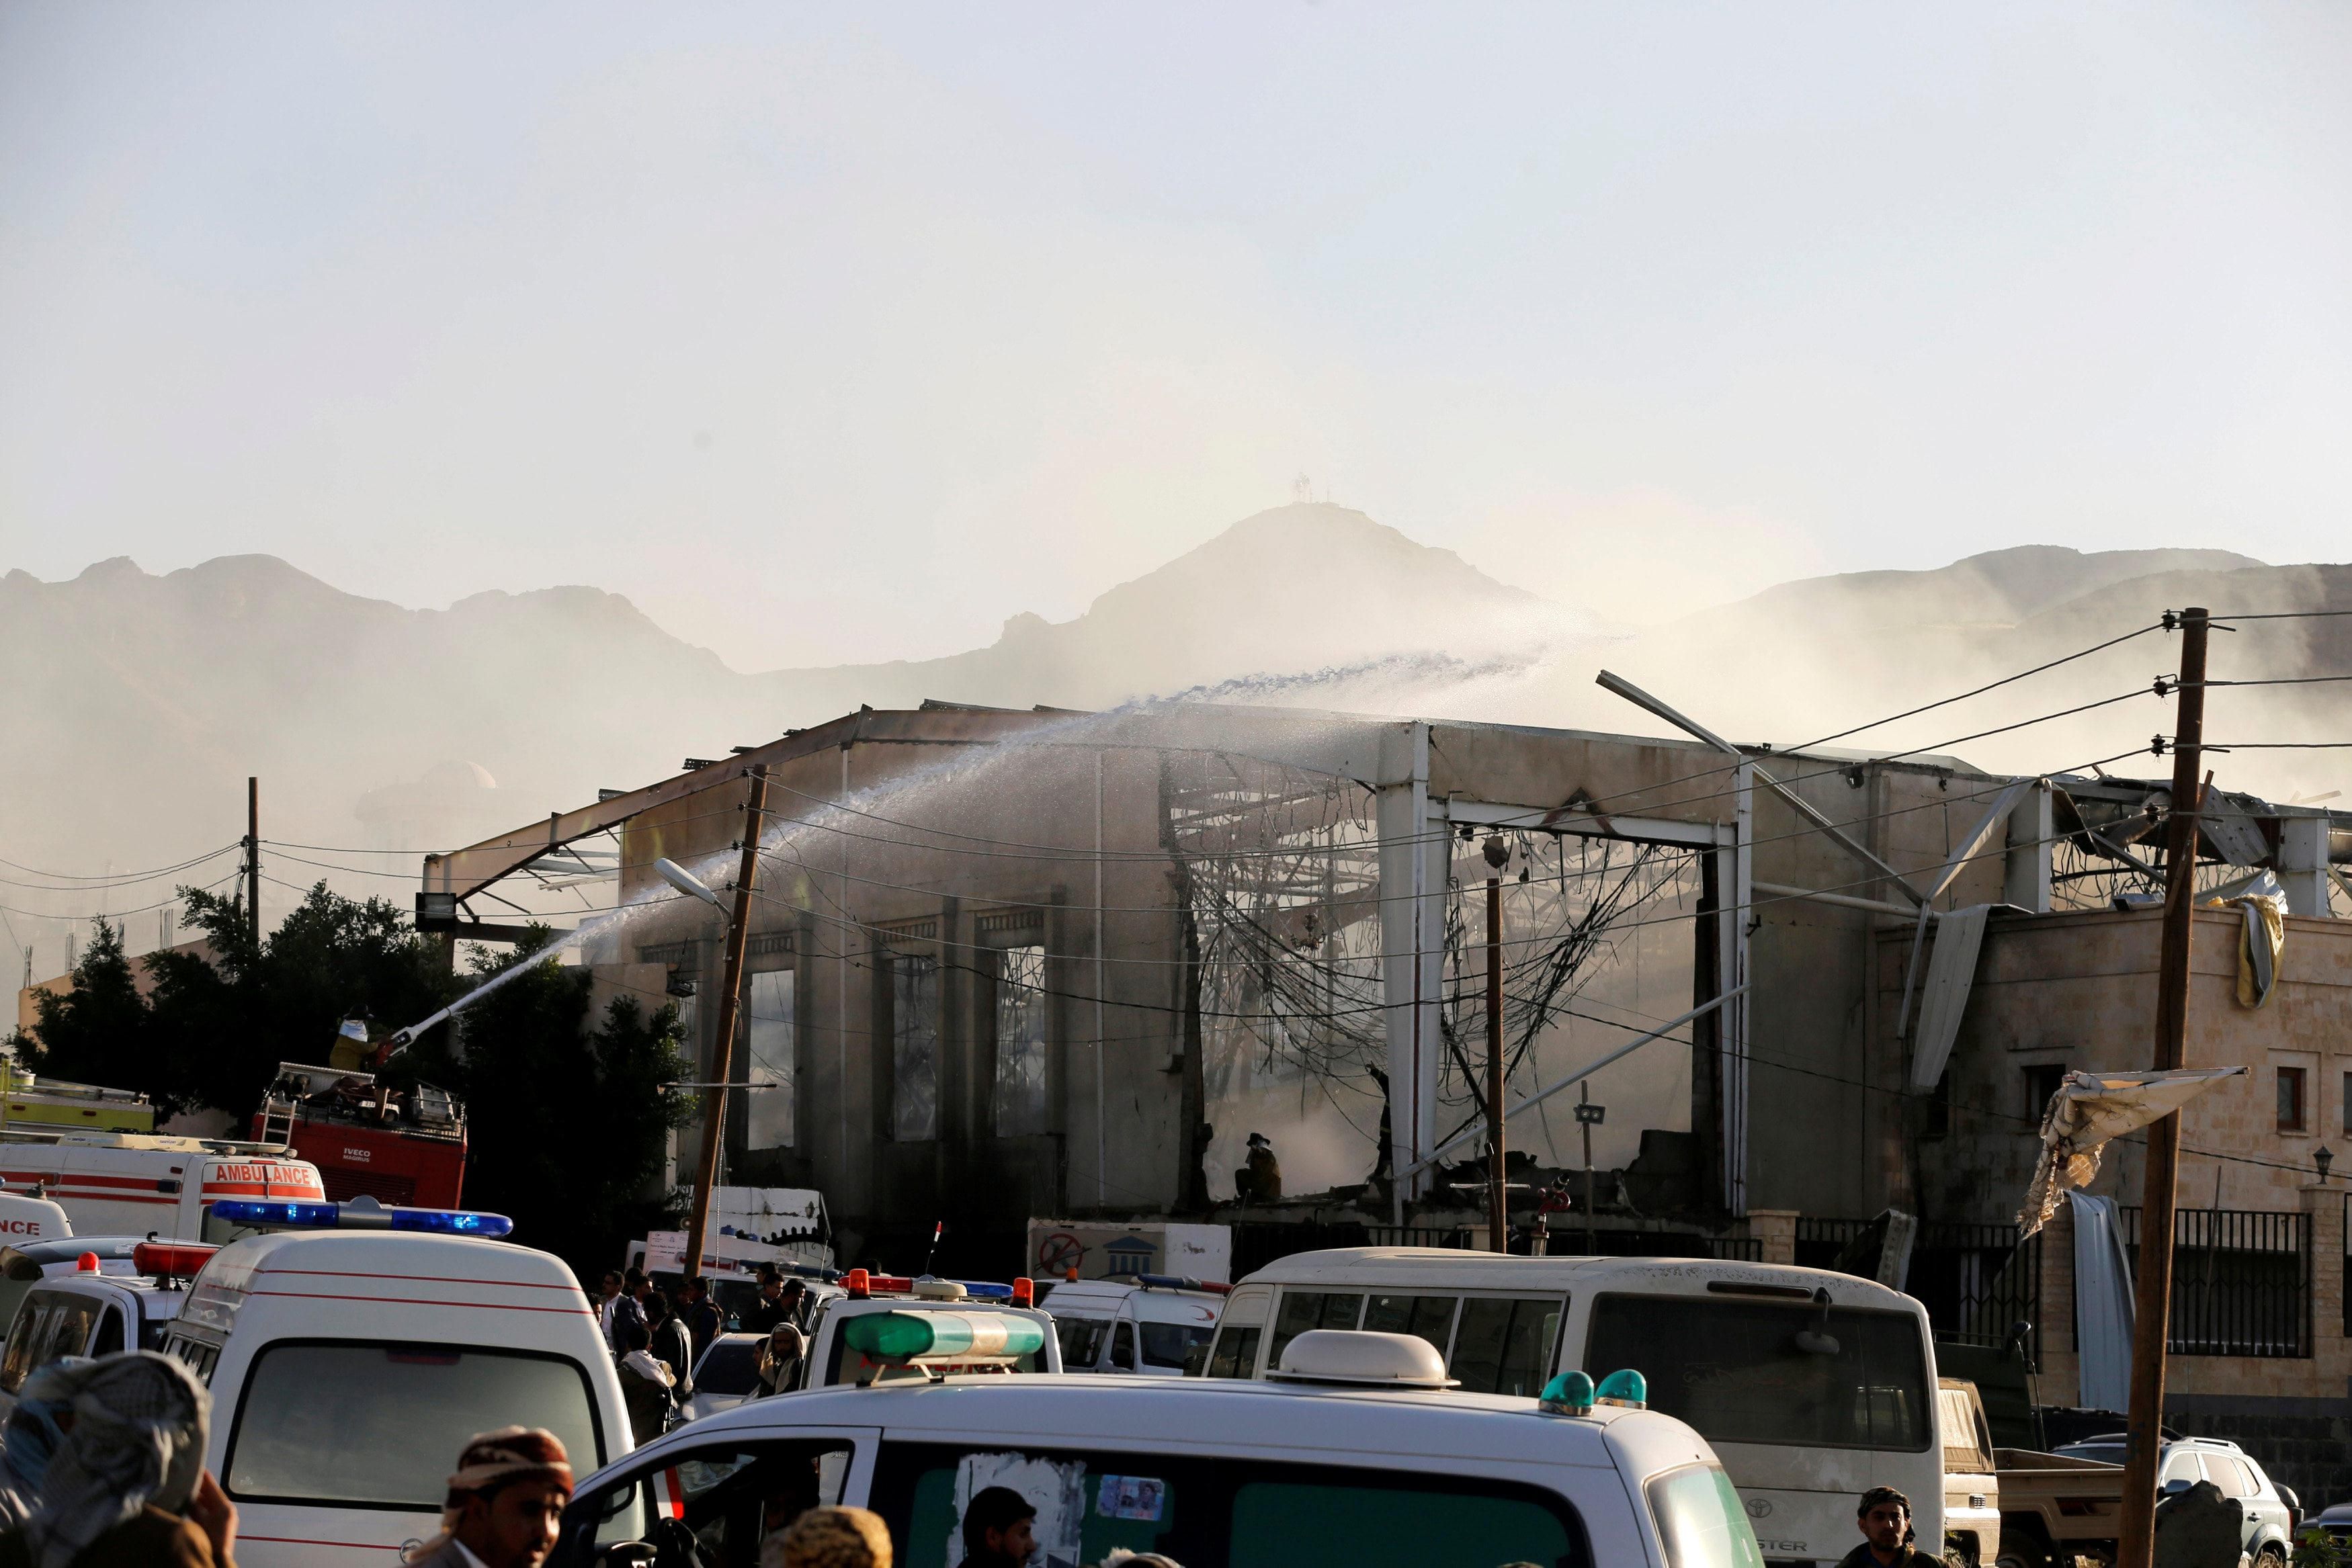 A fire engine sprays water on a damaged building at the site of an airstrike which witnesses said was by Saudi-led coalition aircraft on mourners at a hall where a wake for the father of Jalal al-Roweishan, the interior minister in the Houthi-dominated Yemeni government, was being held, in Sanaa, Yemen October 8, 2016. REUTERS/Khaled Abdullah